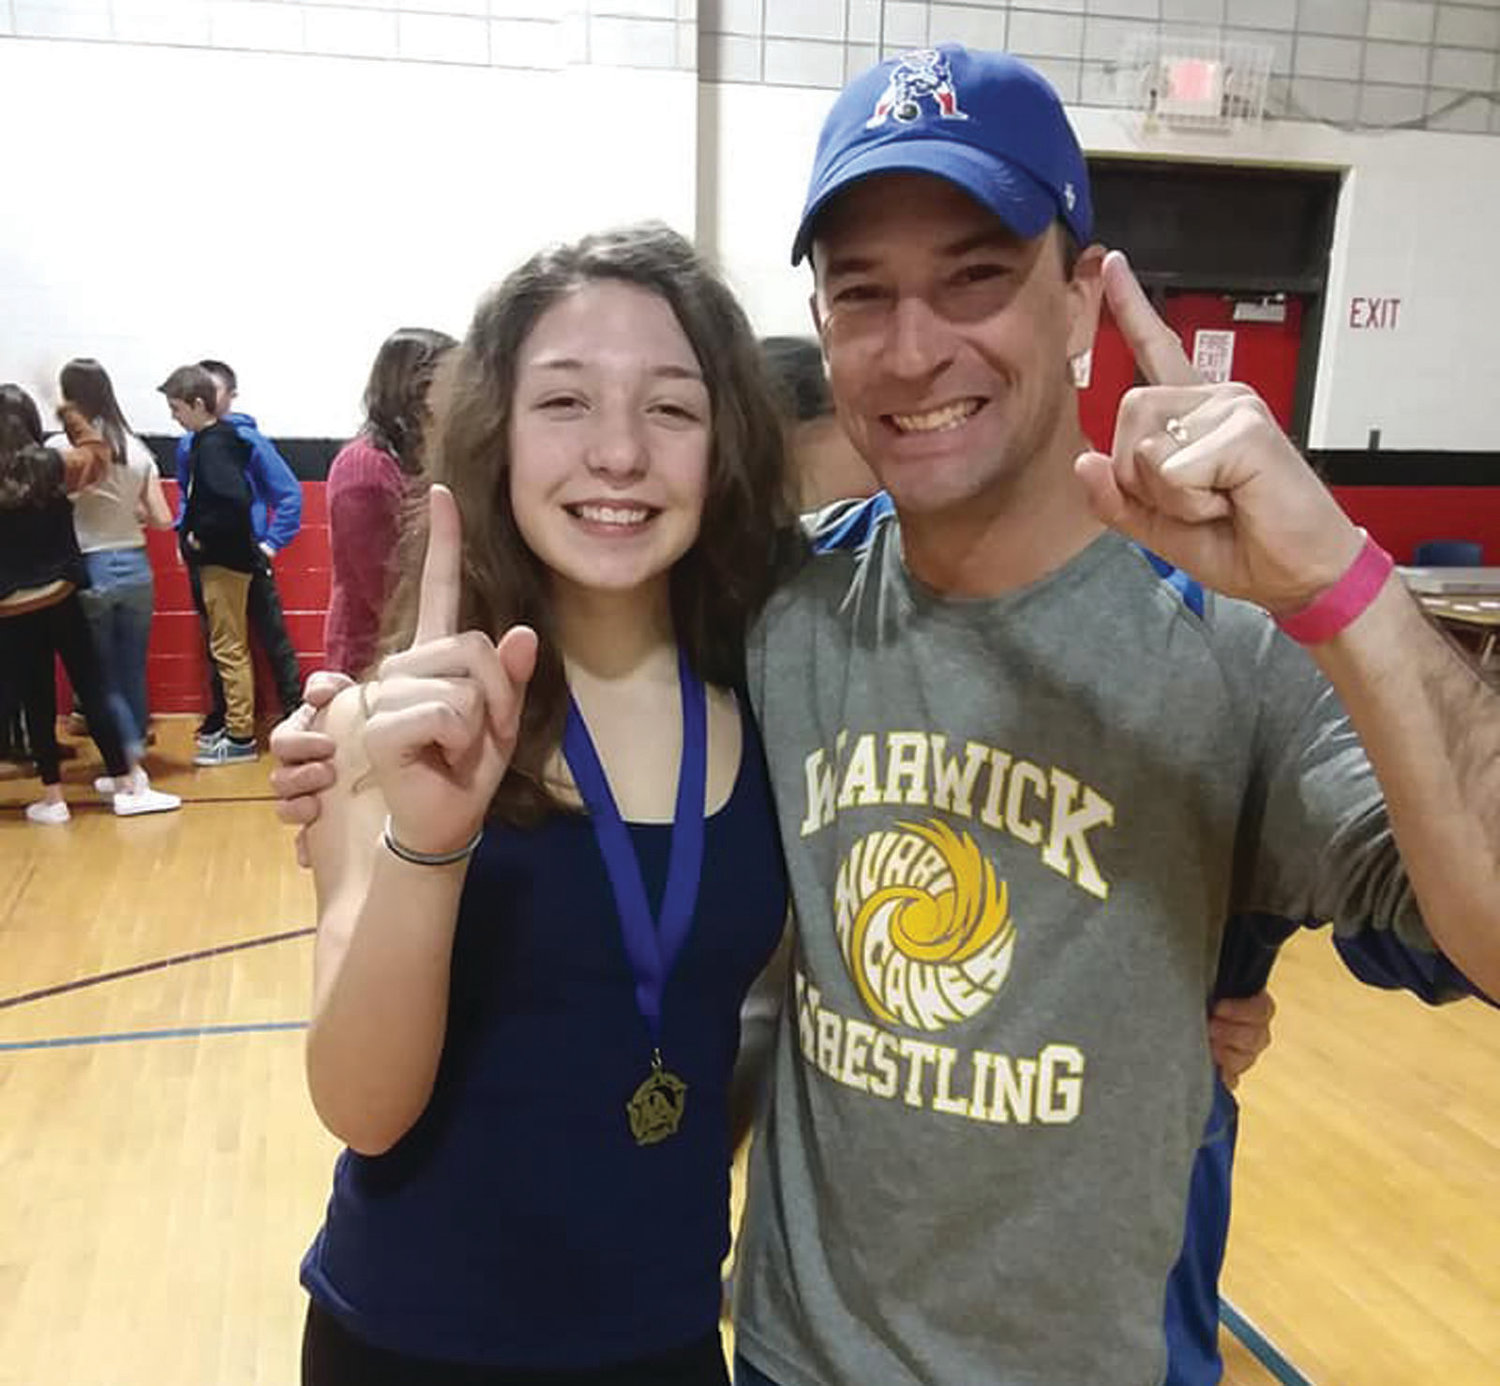 TAKING GOLD: Warwick Vets wrestler Madison Volpe celebrates her junior varsity middle school state championship win with Hurricanes coach Kurt Keaney last weekend.